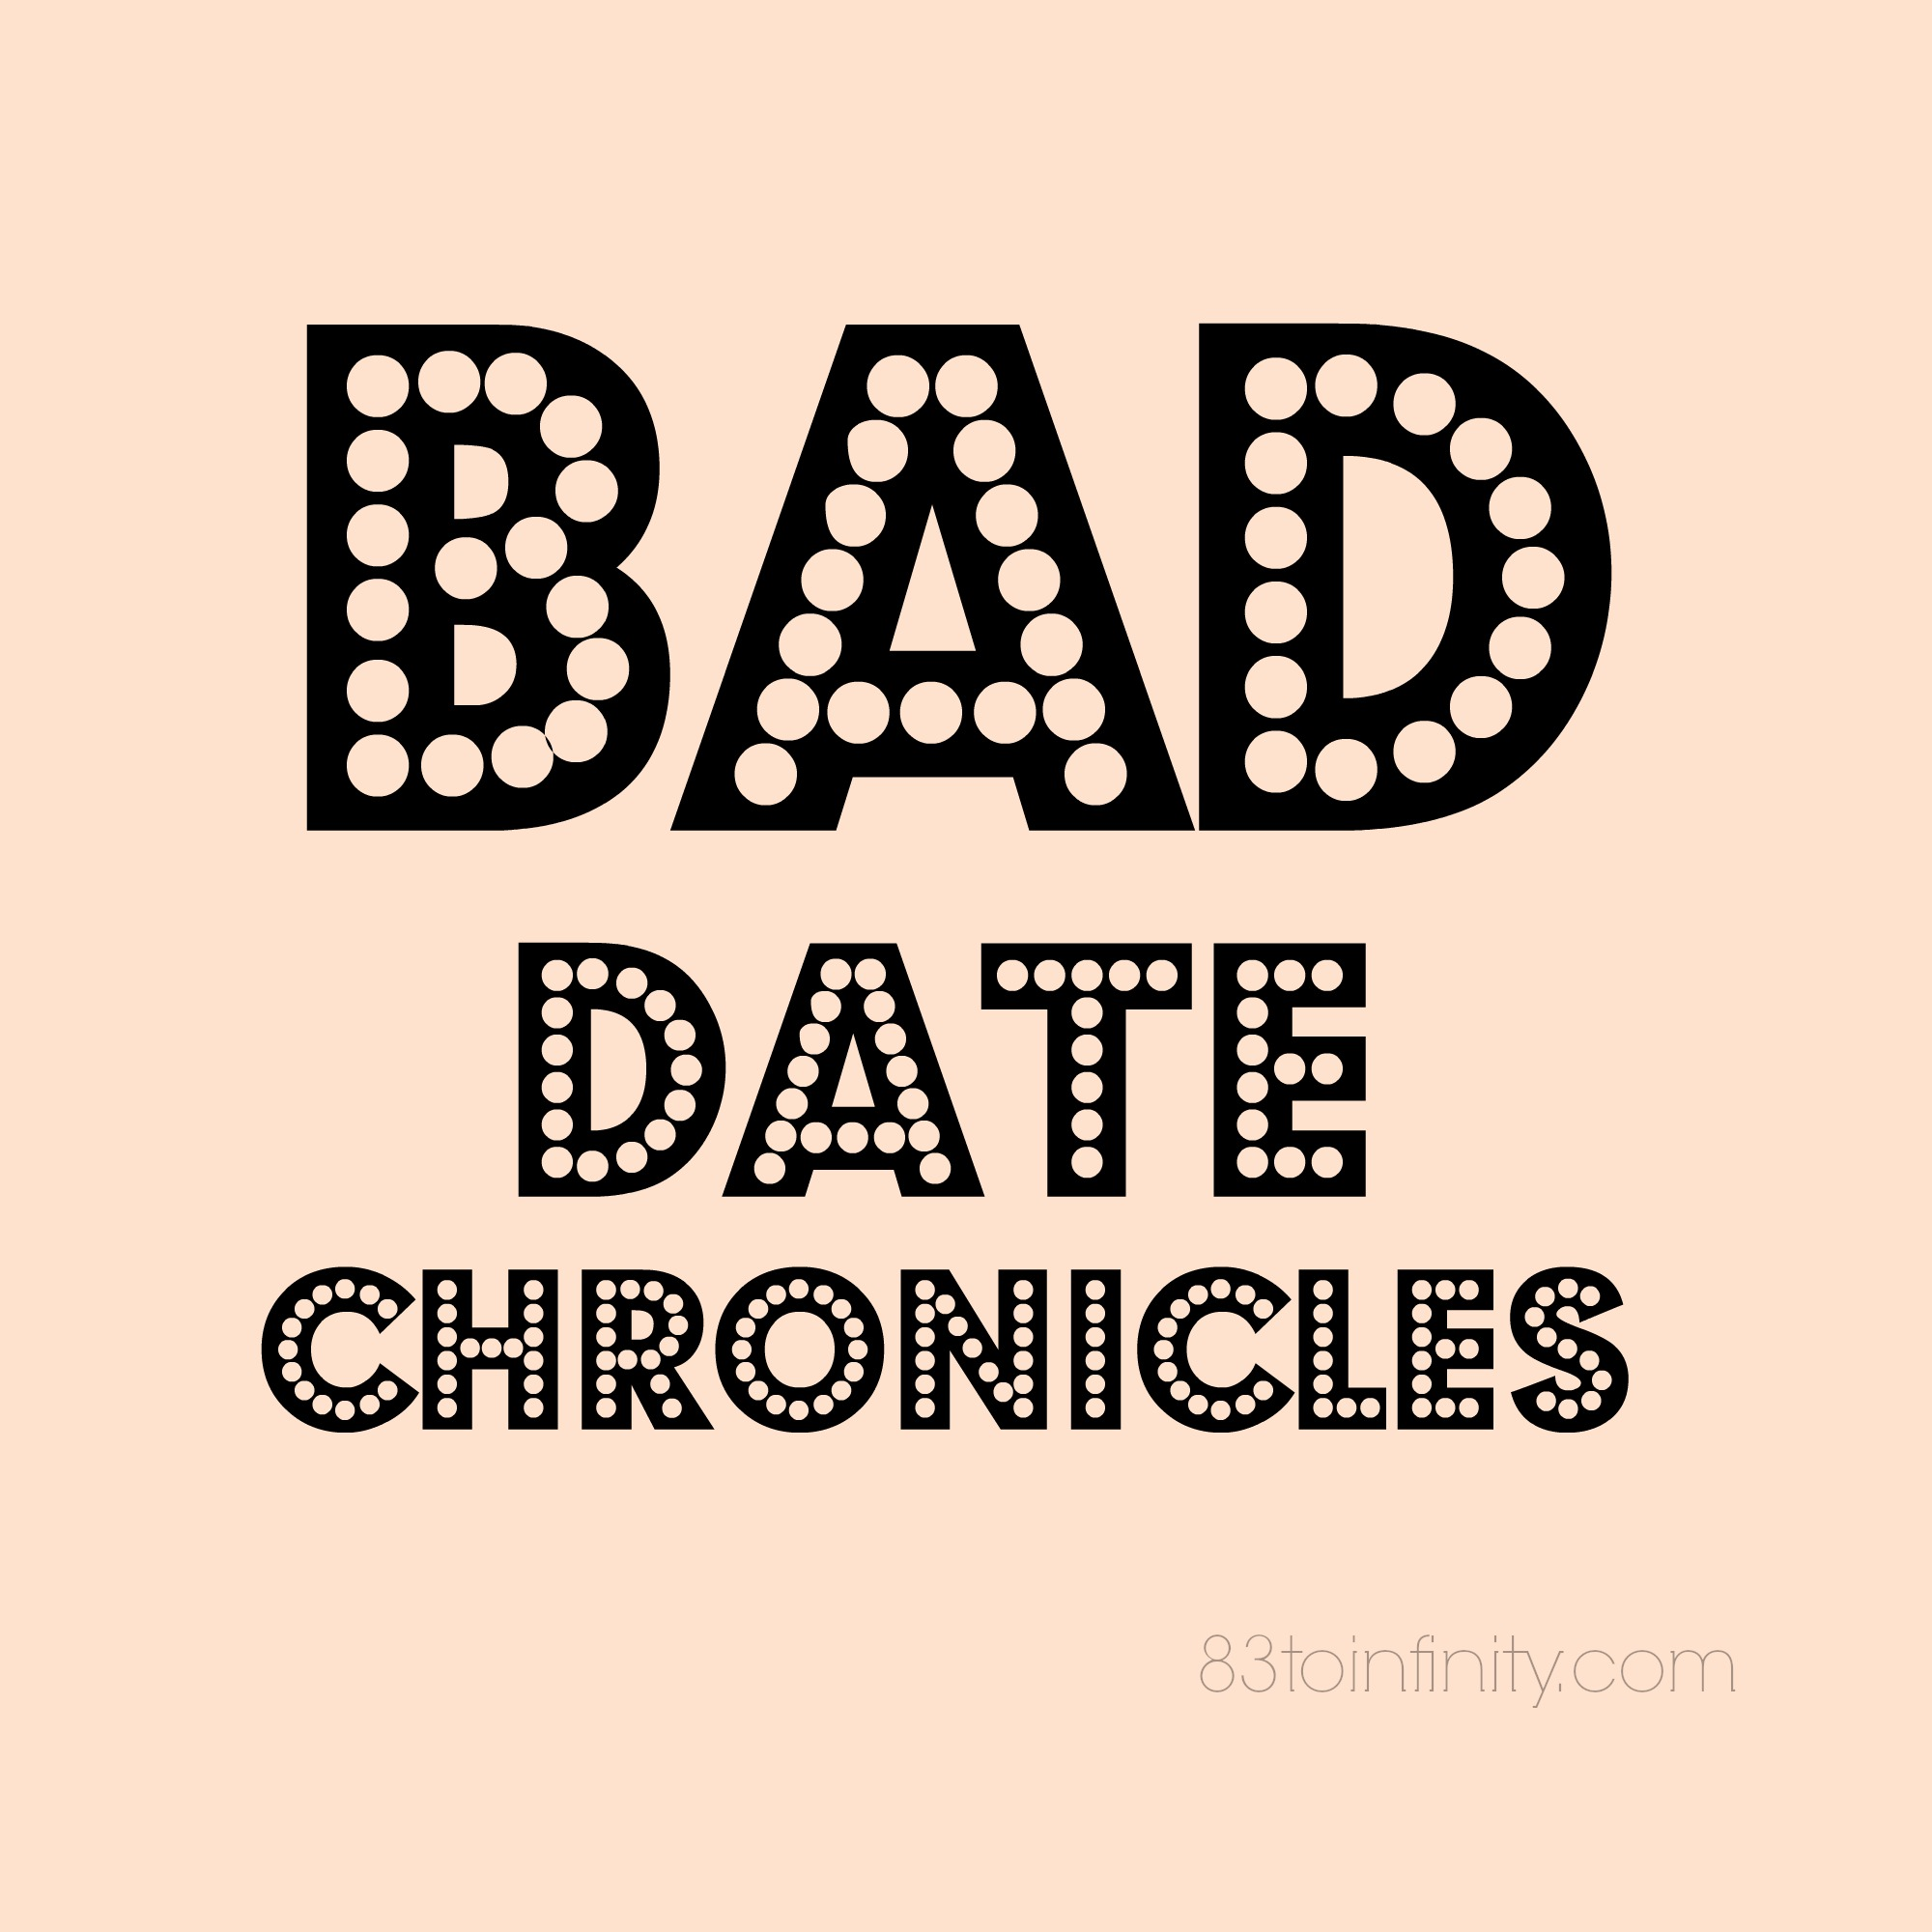 BadDateChronicles